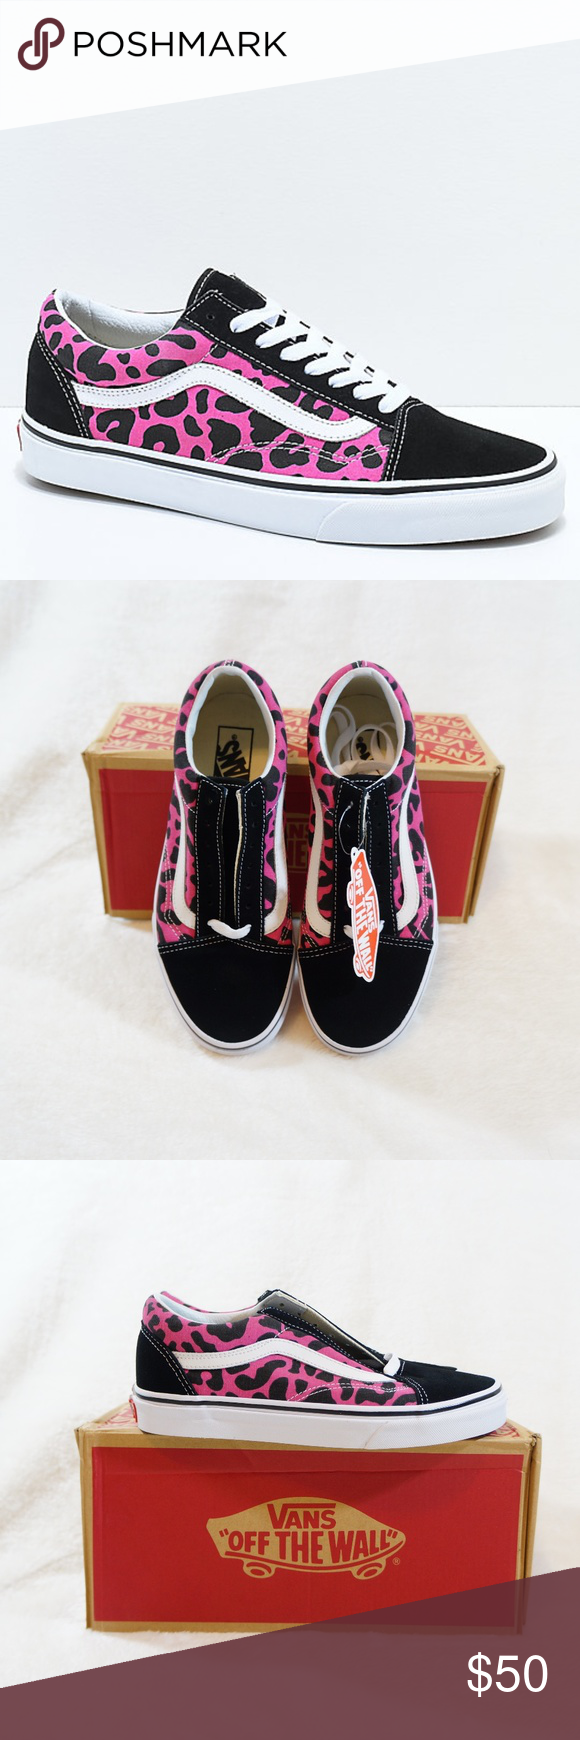 9deab4b3b8bf Vans Old Skool Pink   Black Leopard Print Shoes Old Skool Pink and Black  Leopard Print Skate Shoes from Vans. Low-profile design. Suede upper with  pink and ...